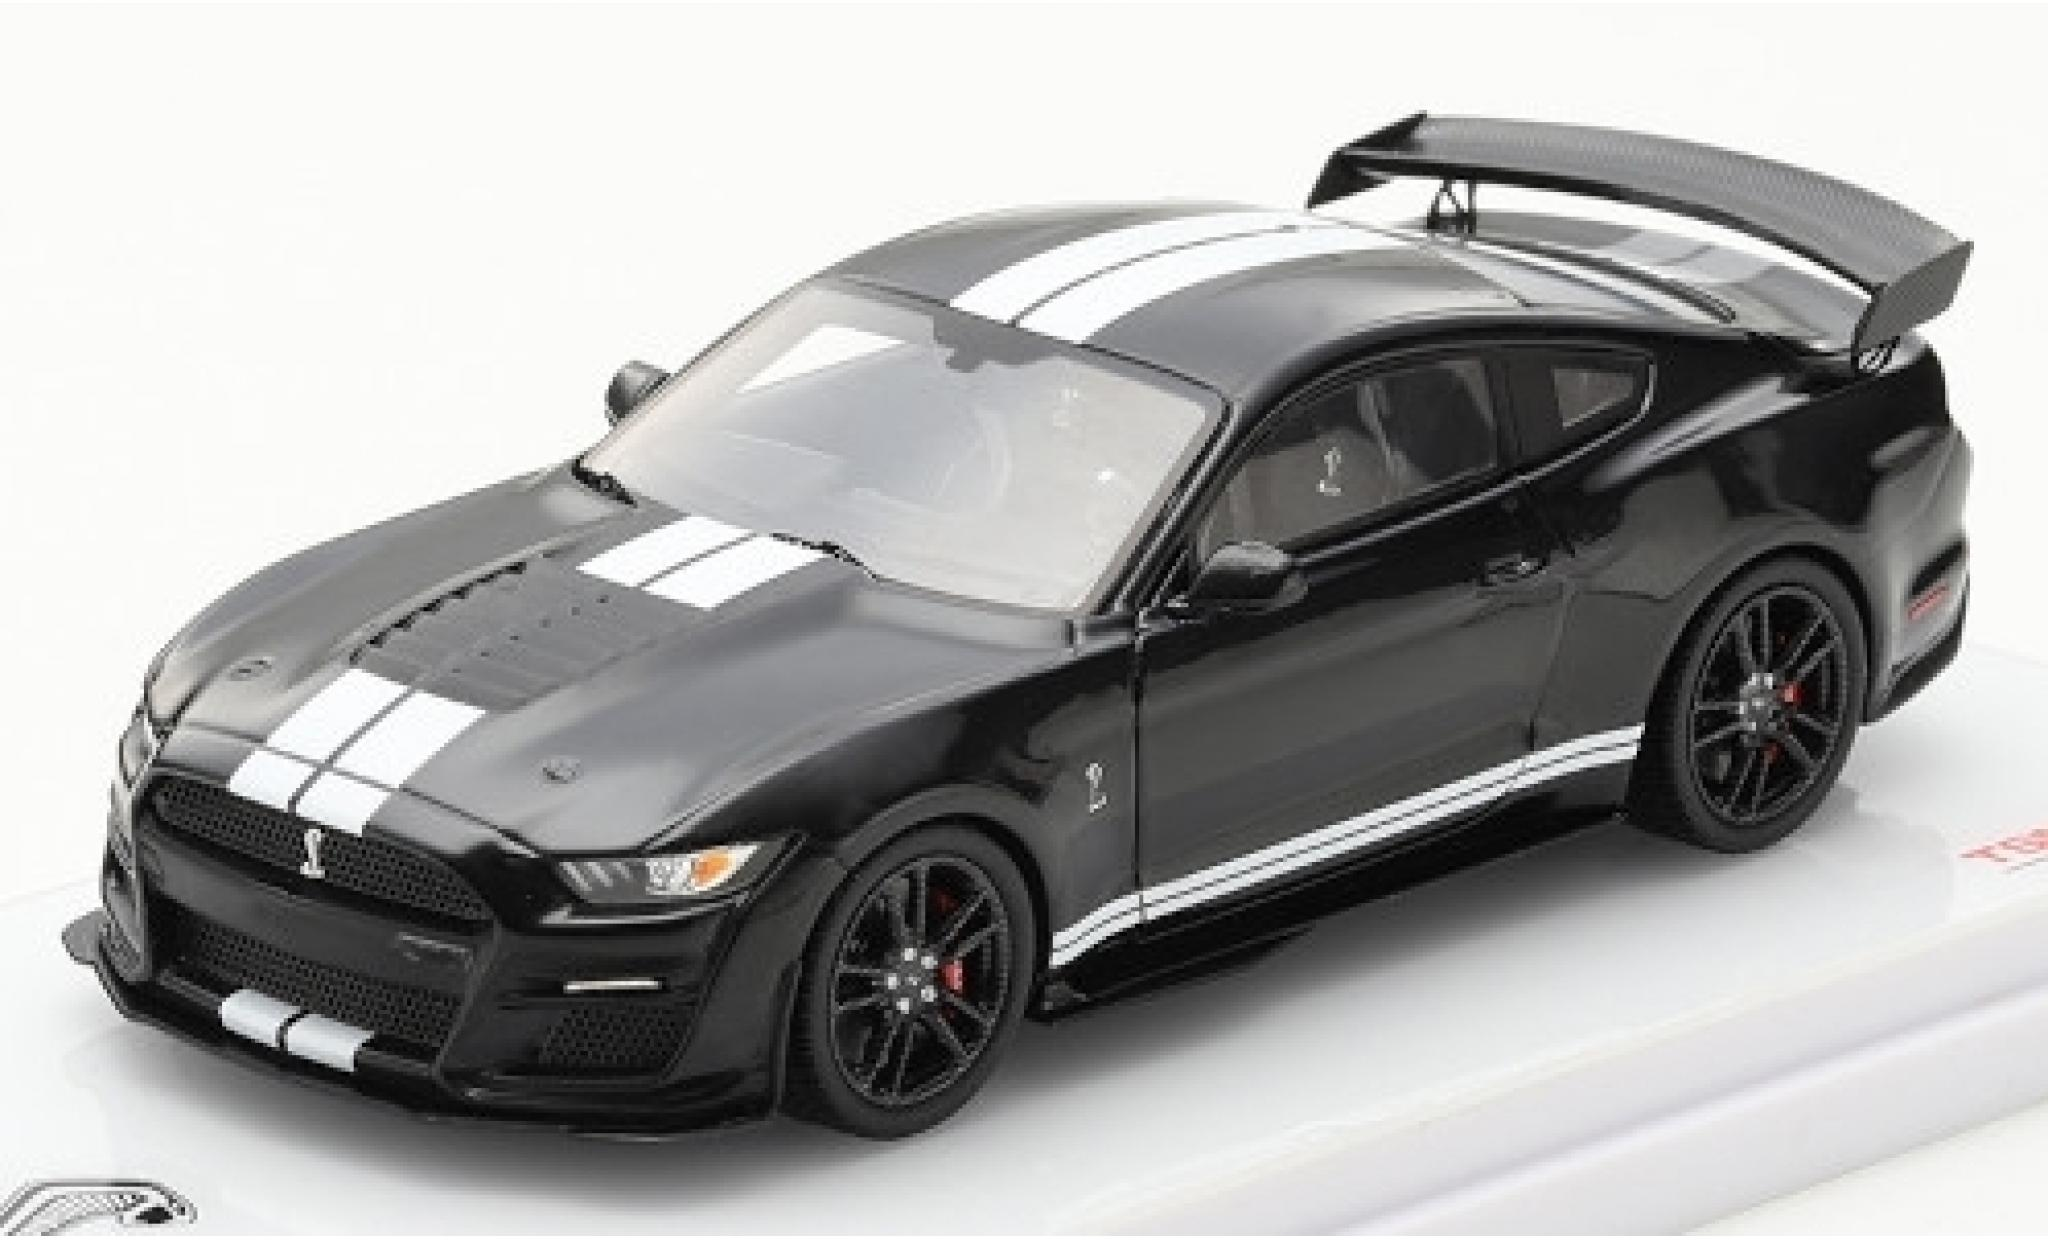 Ford Mustang 1/43 TrueScale Miniatures Shelby GT500 schwarz/weiss